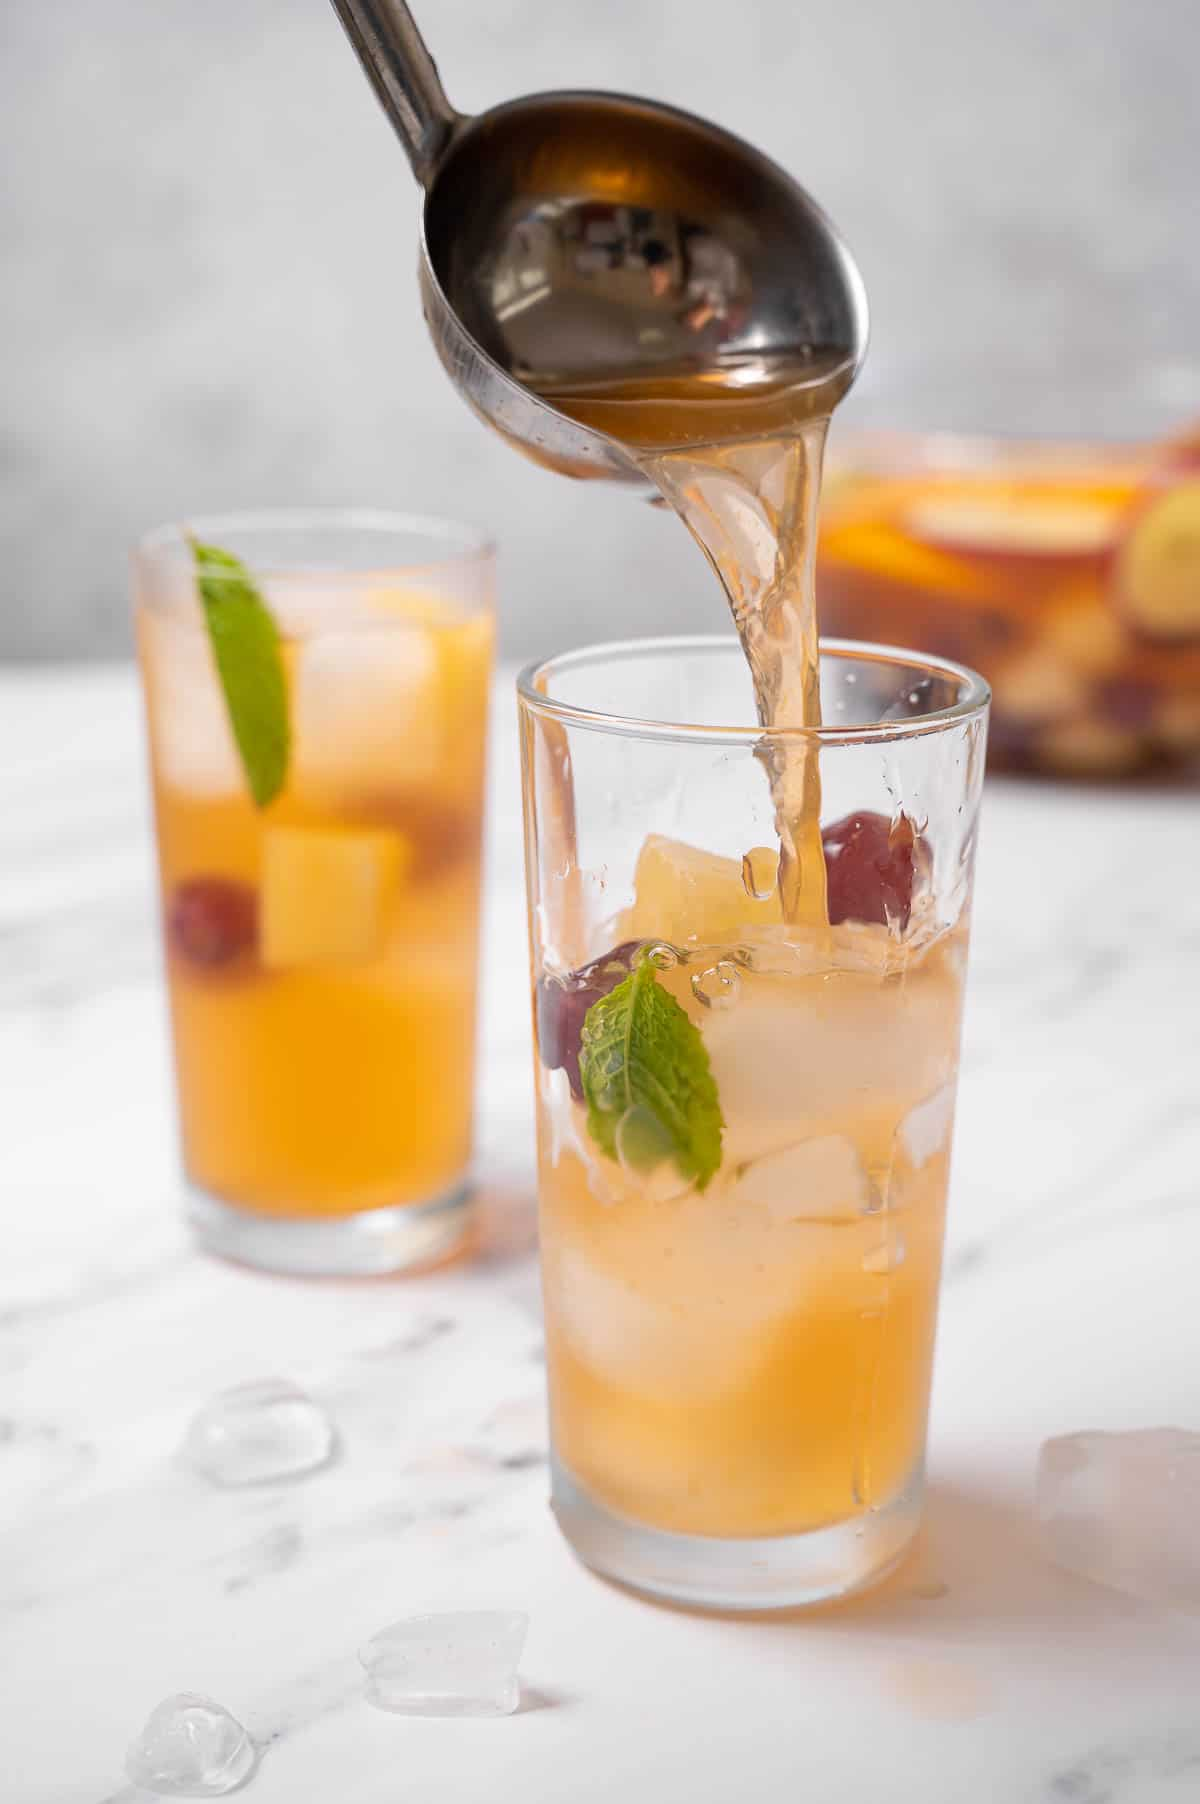 Two glasses of cava sangria being served from a ladle